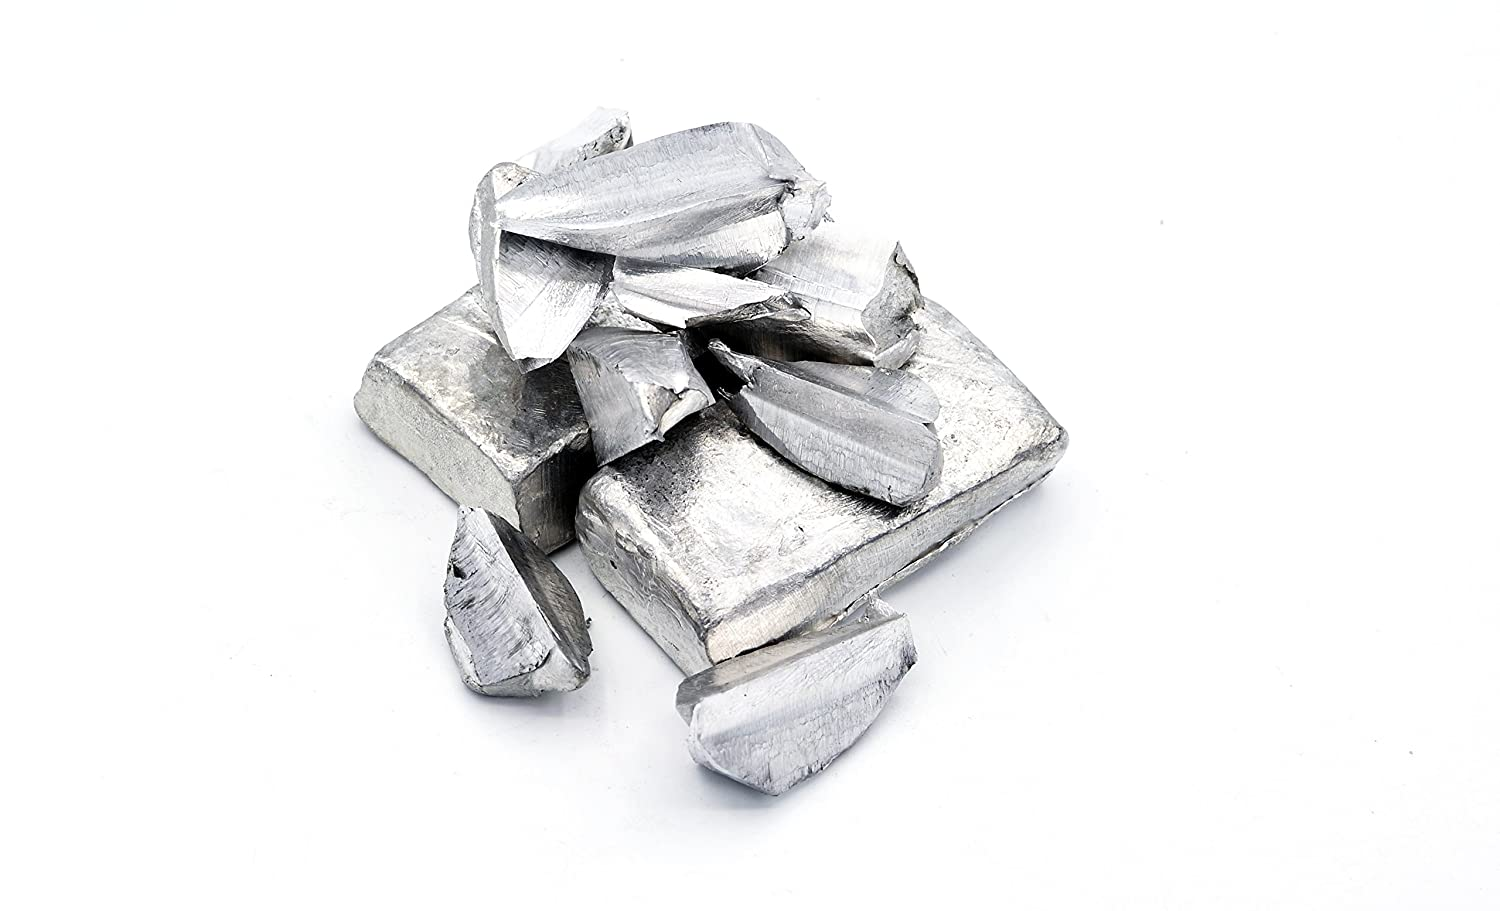 Indium Metal 99.995% Pure 20 Grams for Element Collection Luciteria Science